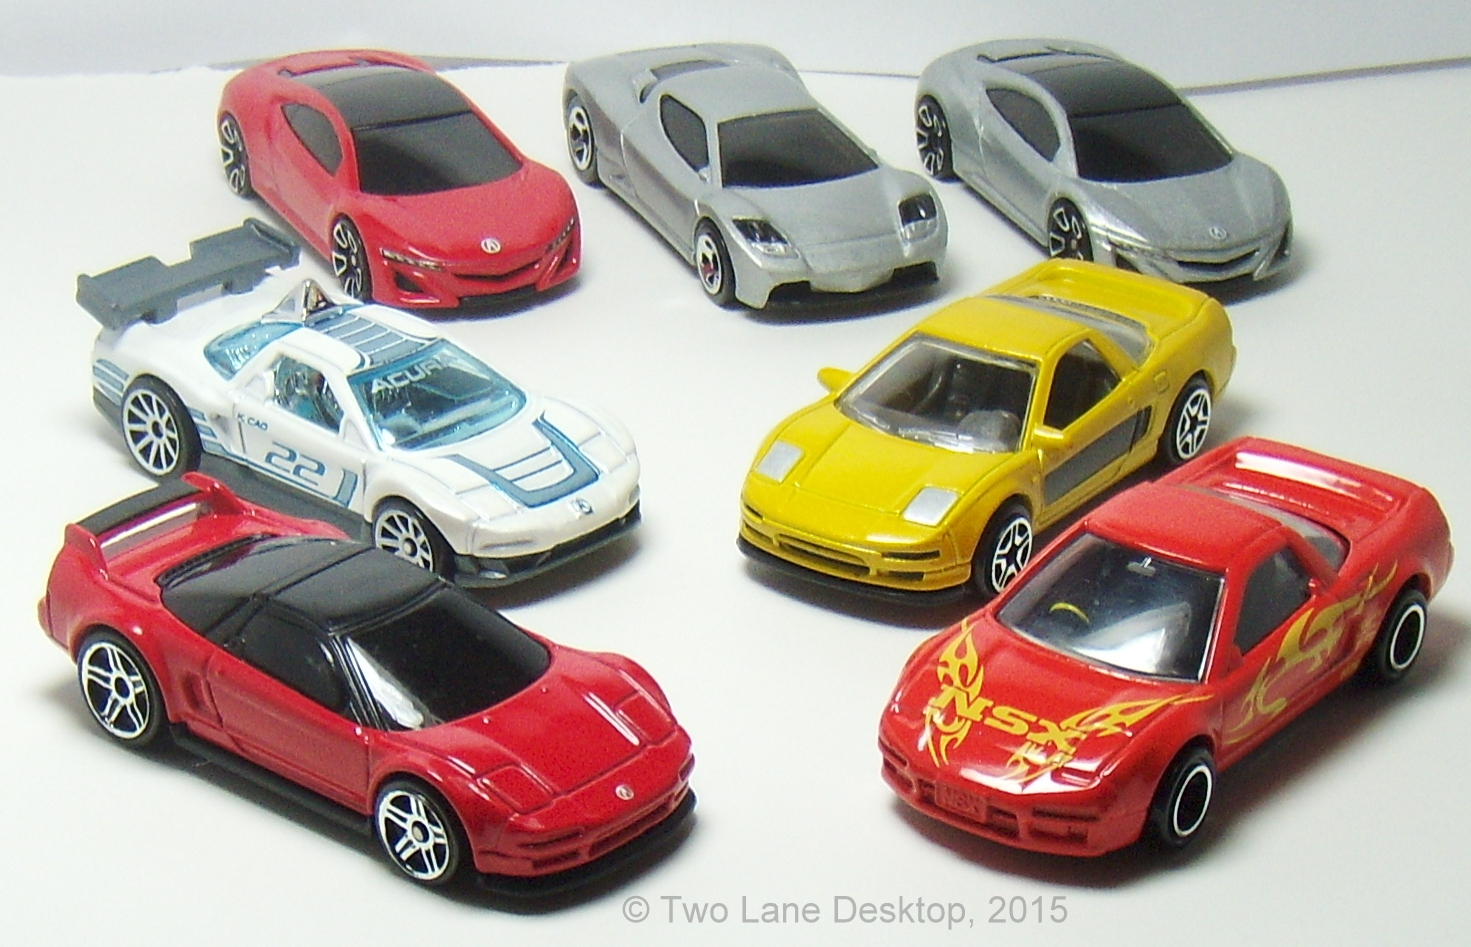 acura nsx 2015 engine. history of the nsx from hot wheels 1990 acura to new 2013 concept nsx 2015 engine